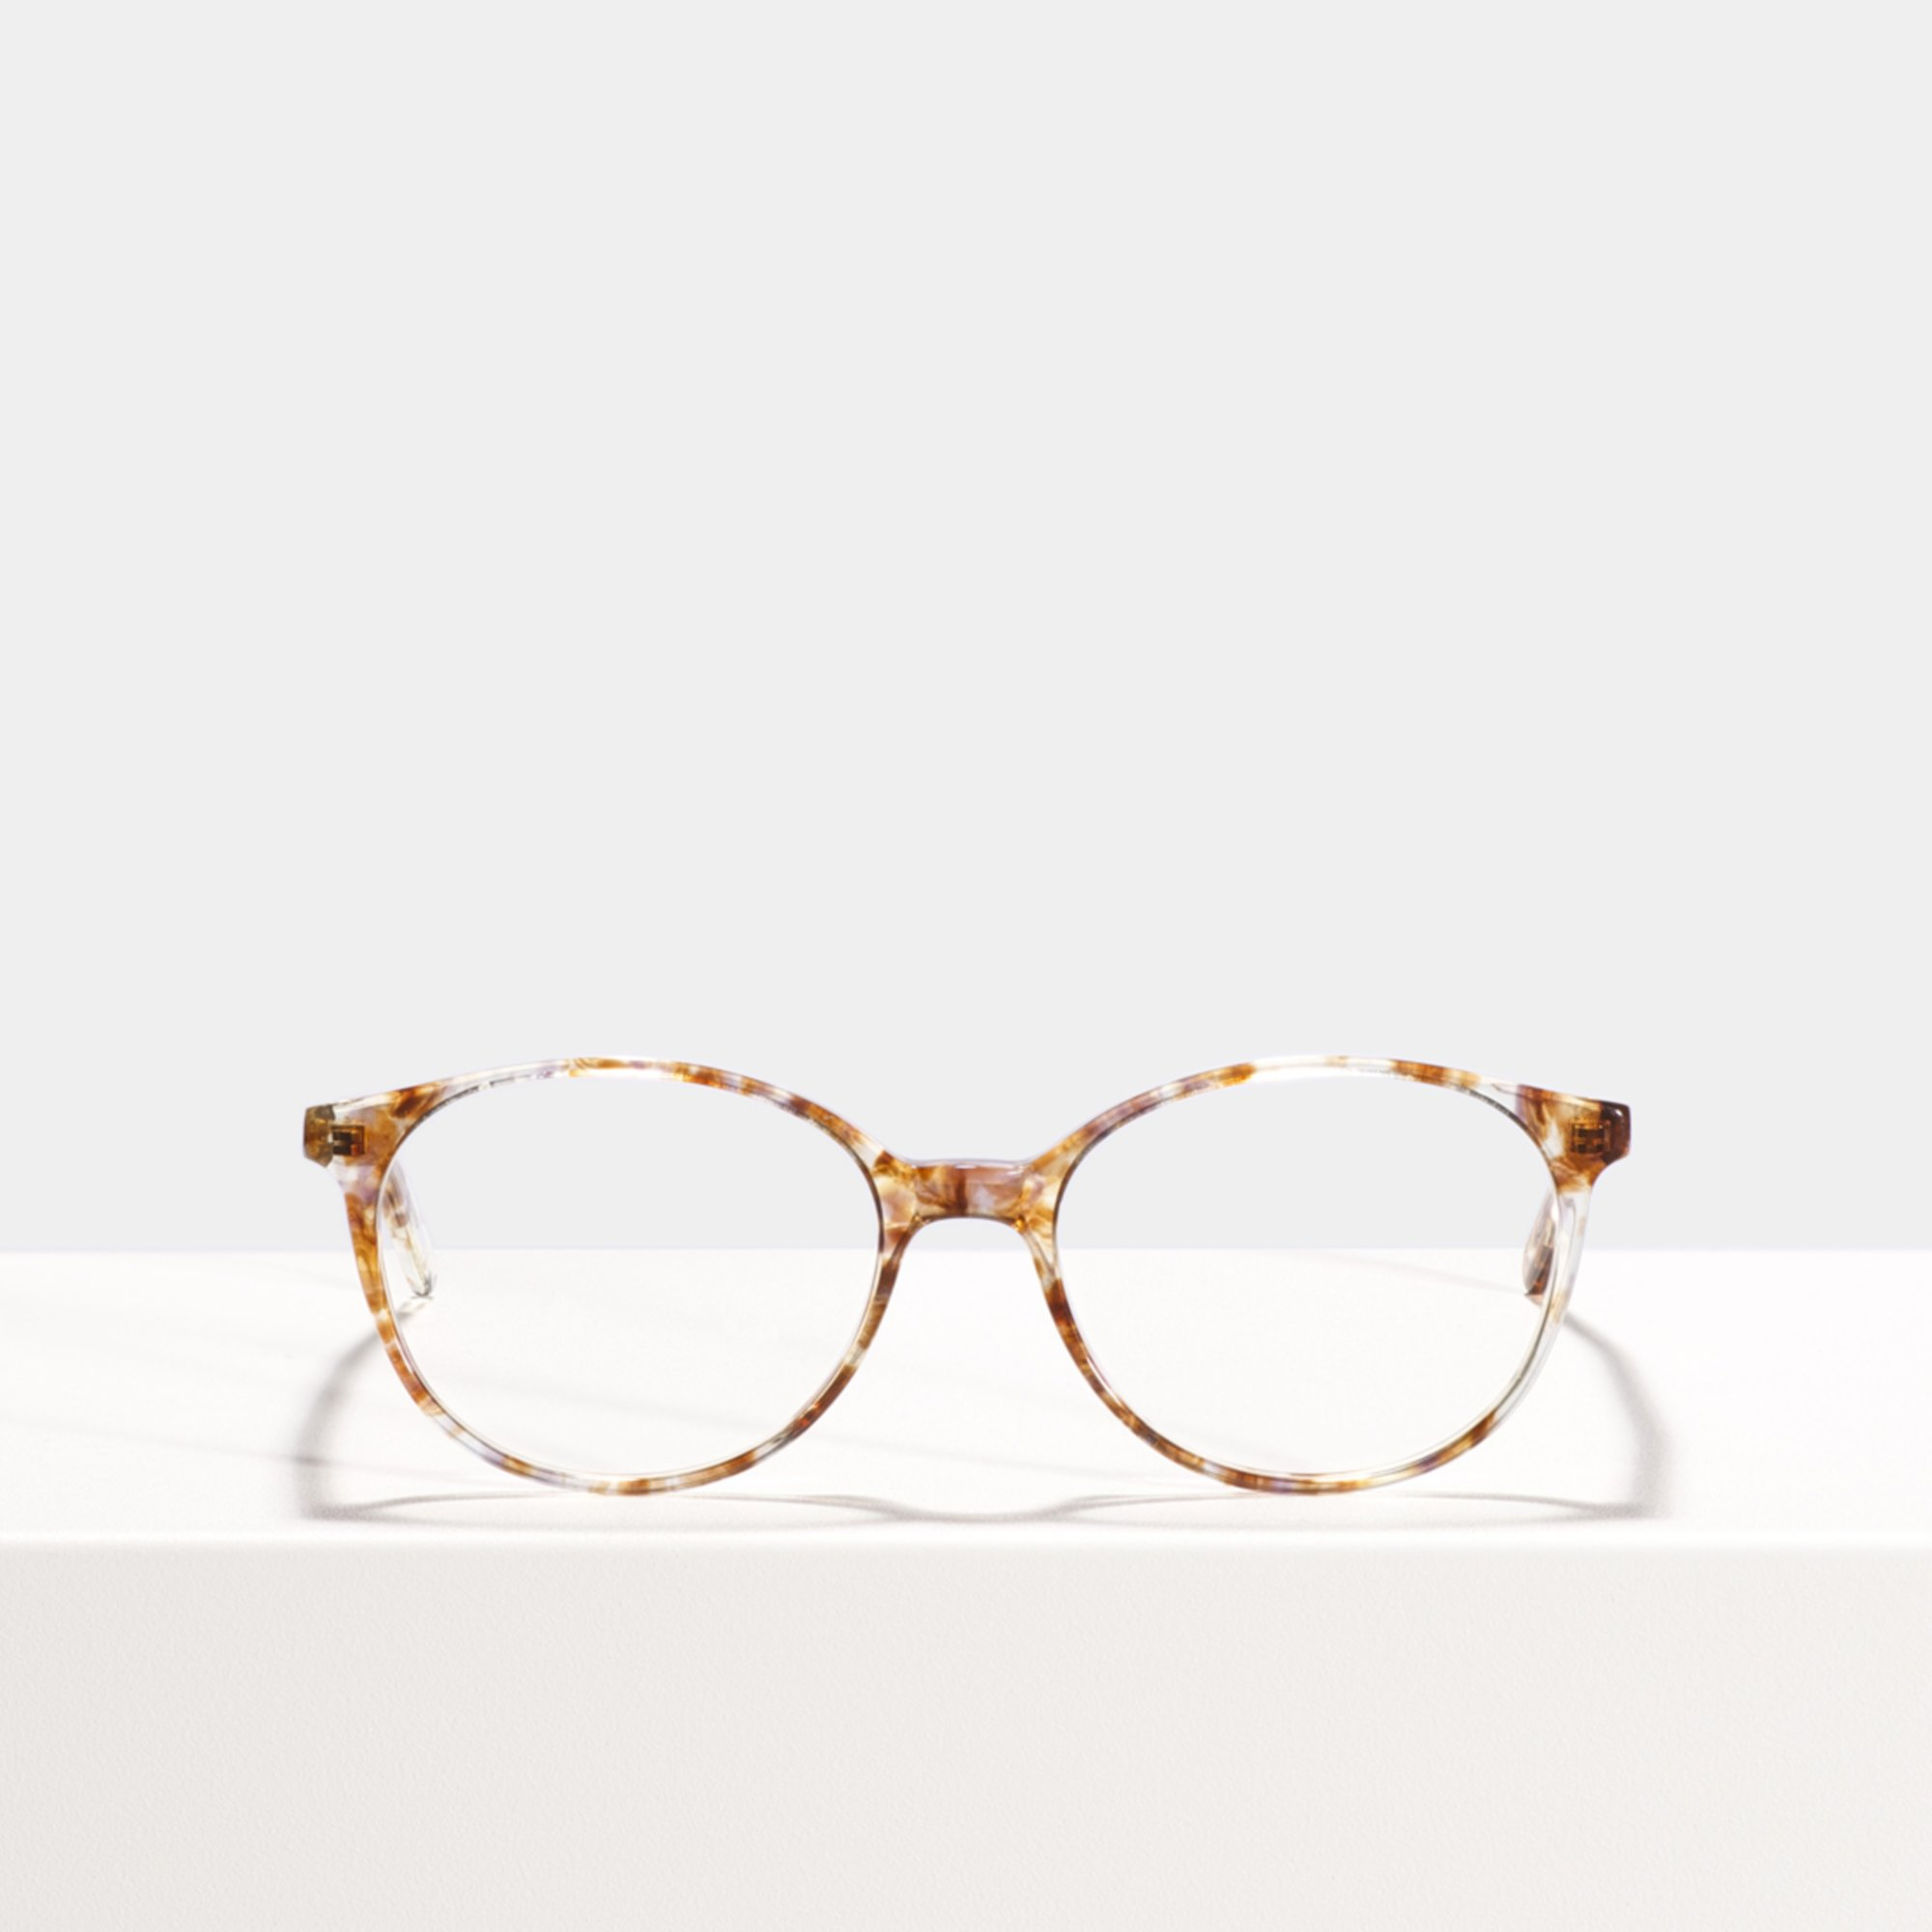 Ace & Tate Glasses | round acetate in Brown, Clear